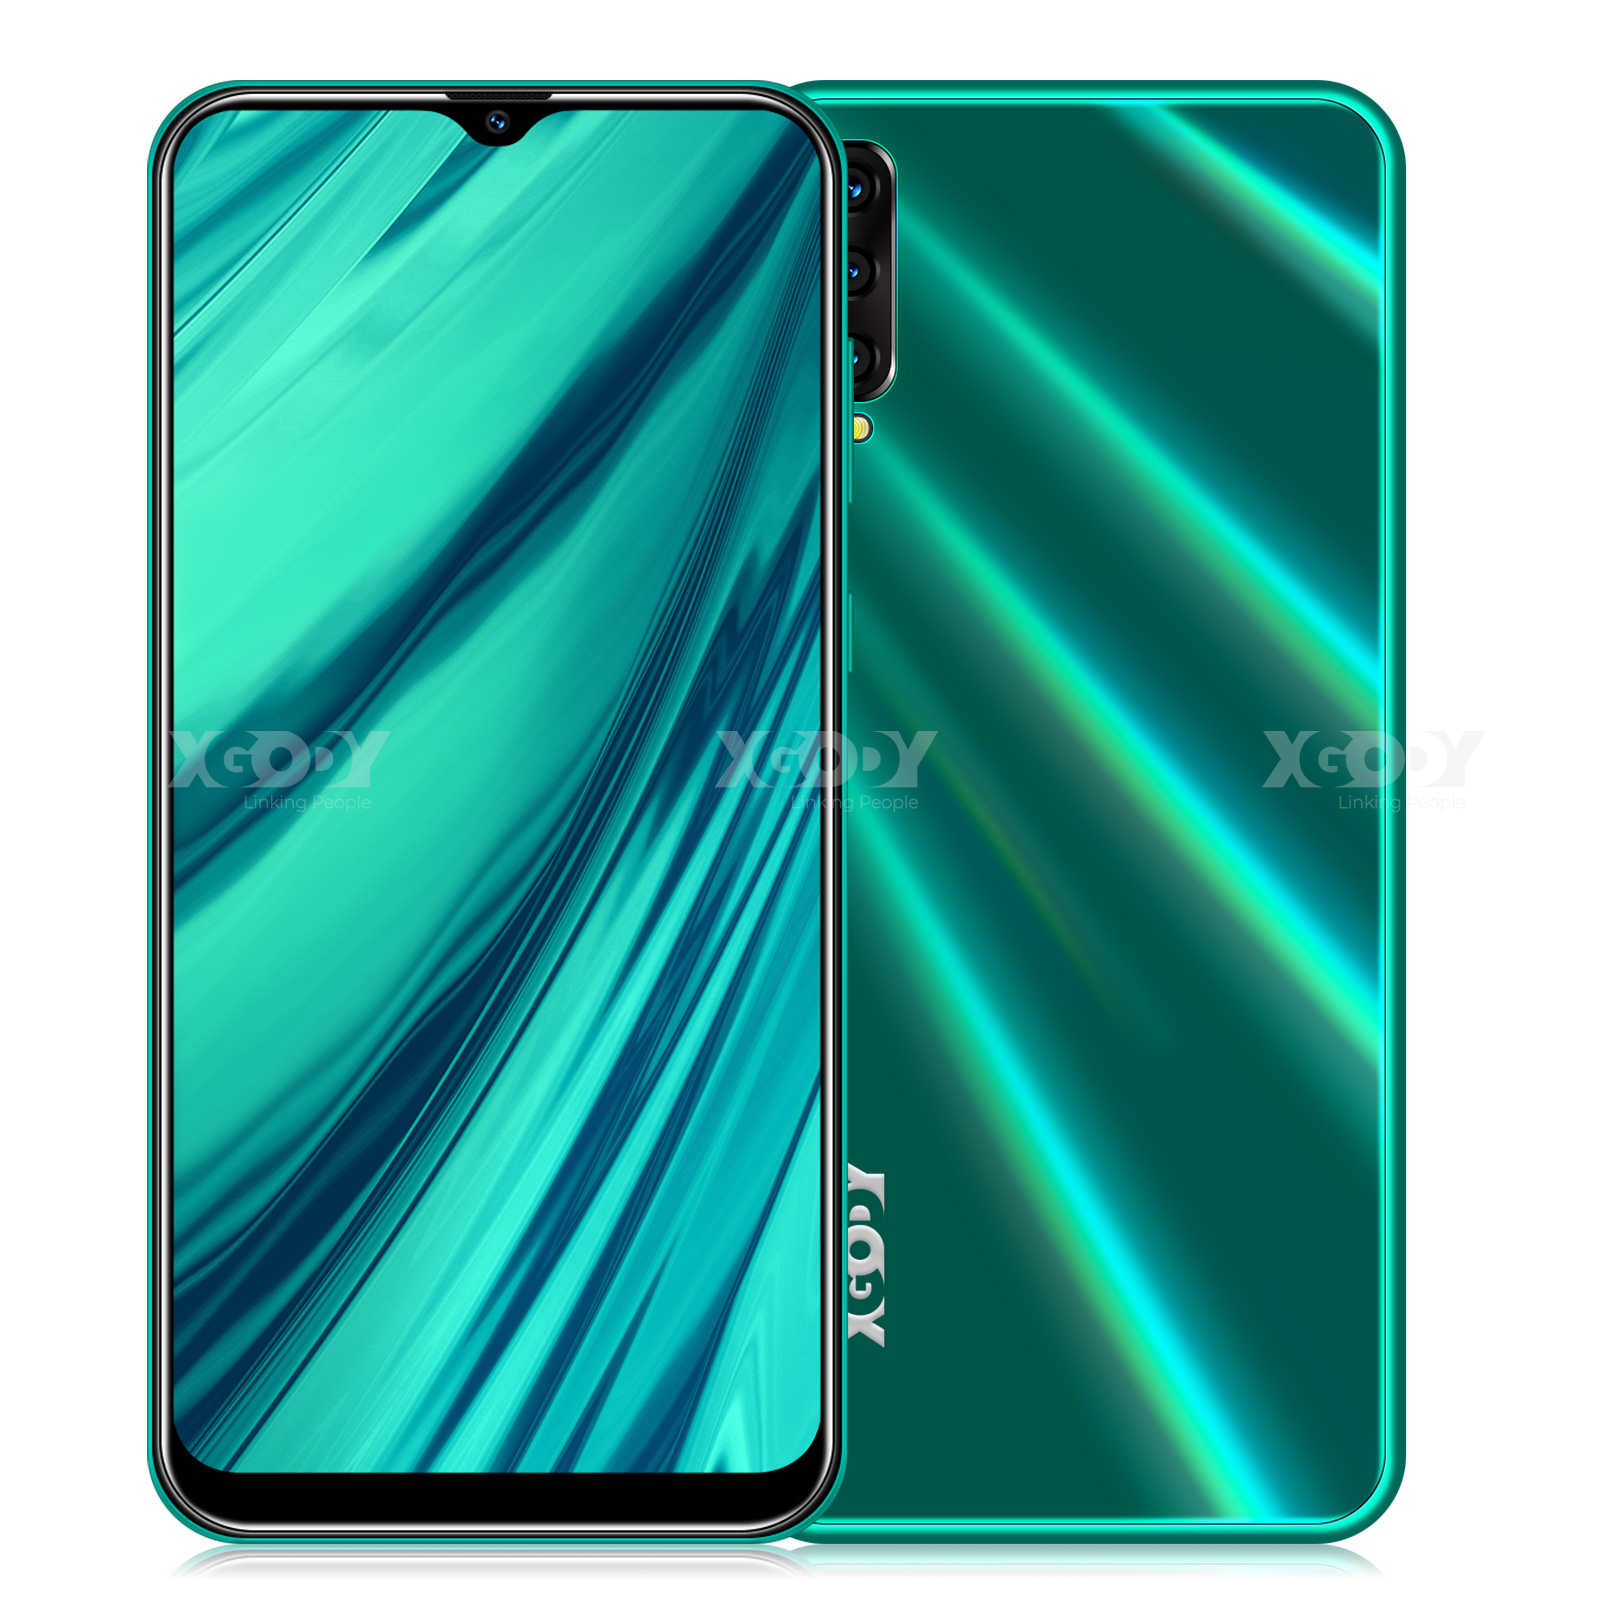 XGODY A90 3G Smartphone Android 9.0 6.5inch 19:9 Full Screen 2GB 16GB MTK6580 Quad Core 5MP Camera 2700mAh Mobile Phone